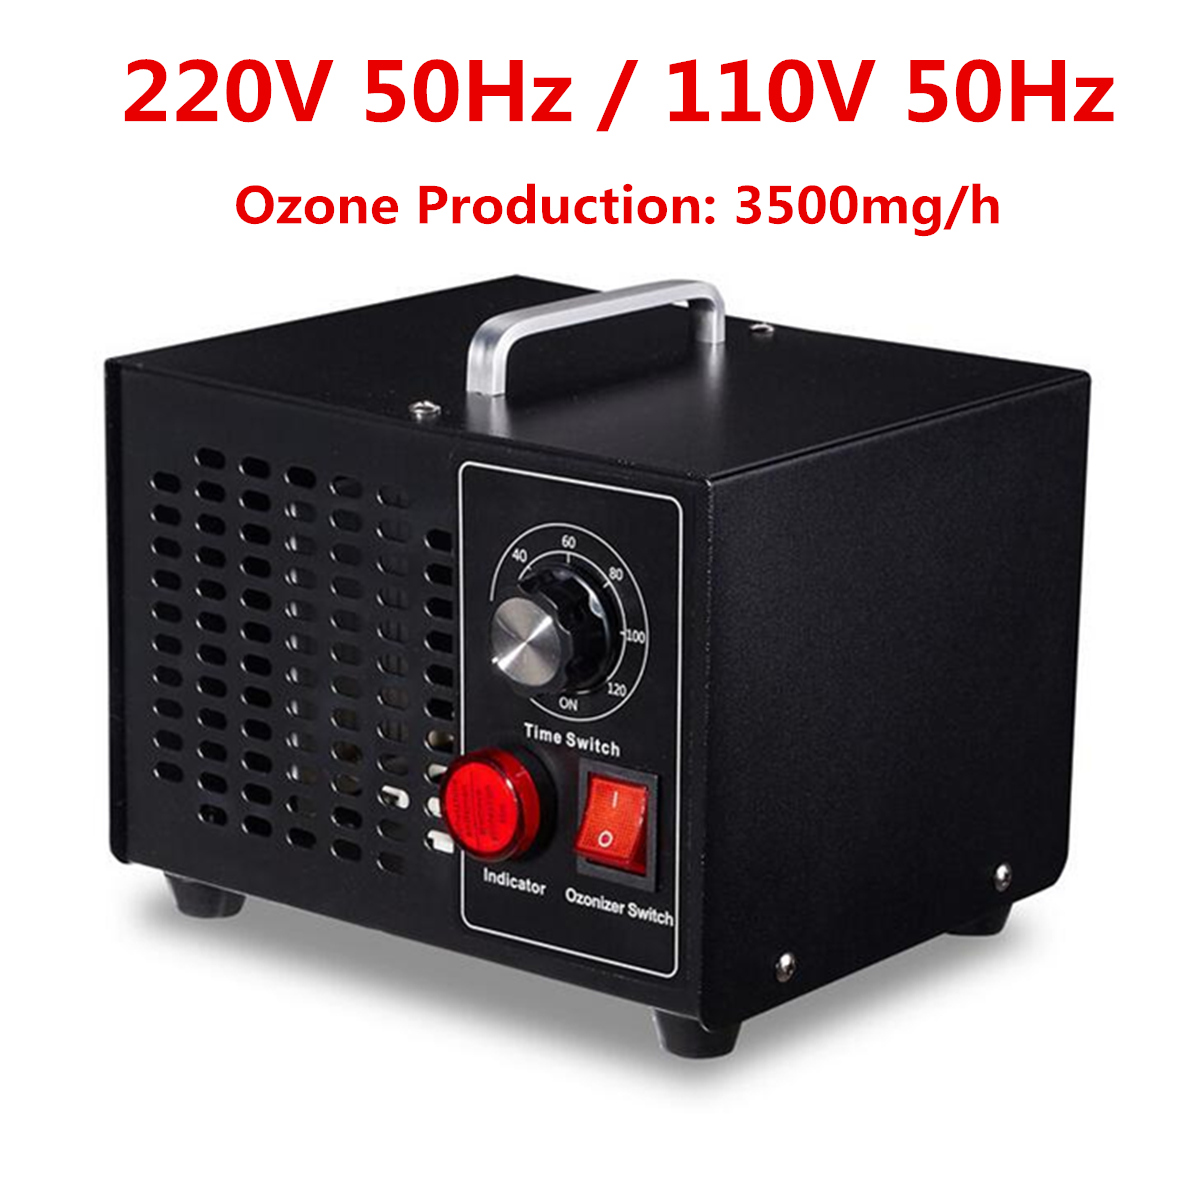 110V/220V 50Hz Commercial Household Ozone Generator Disinfection Machine Air Purifier 3500mg/h